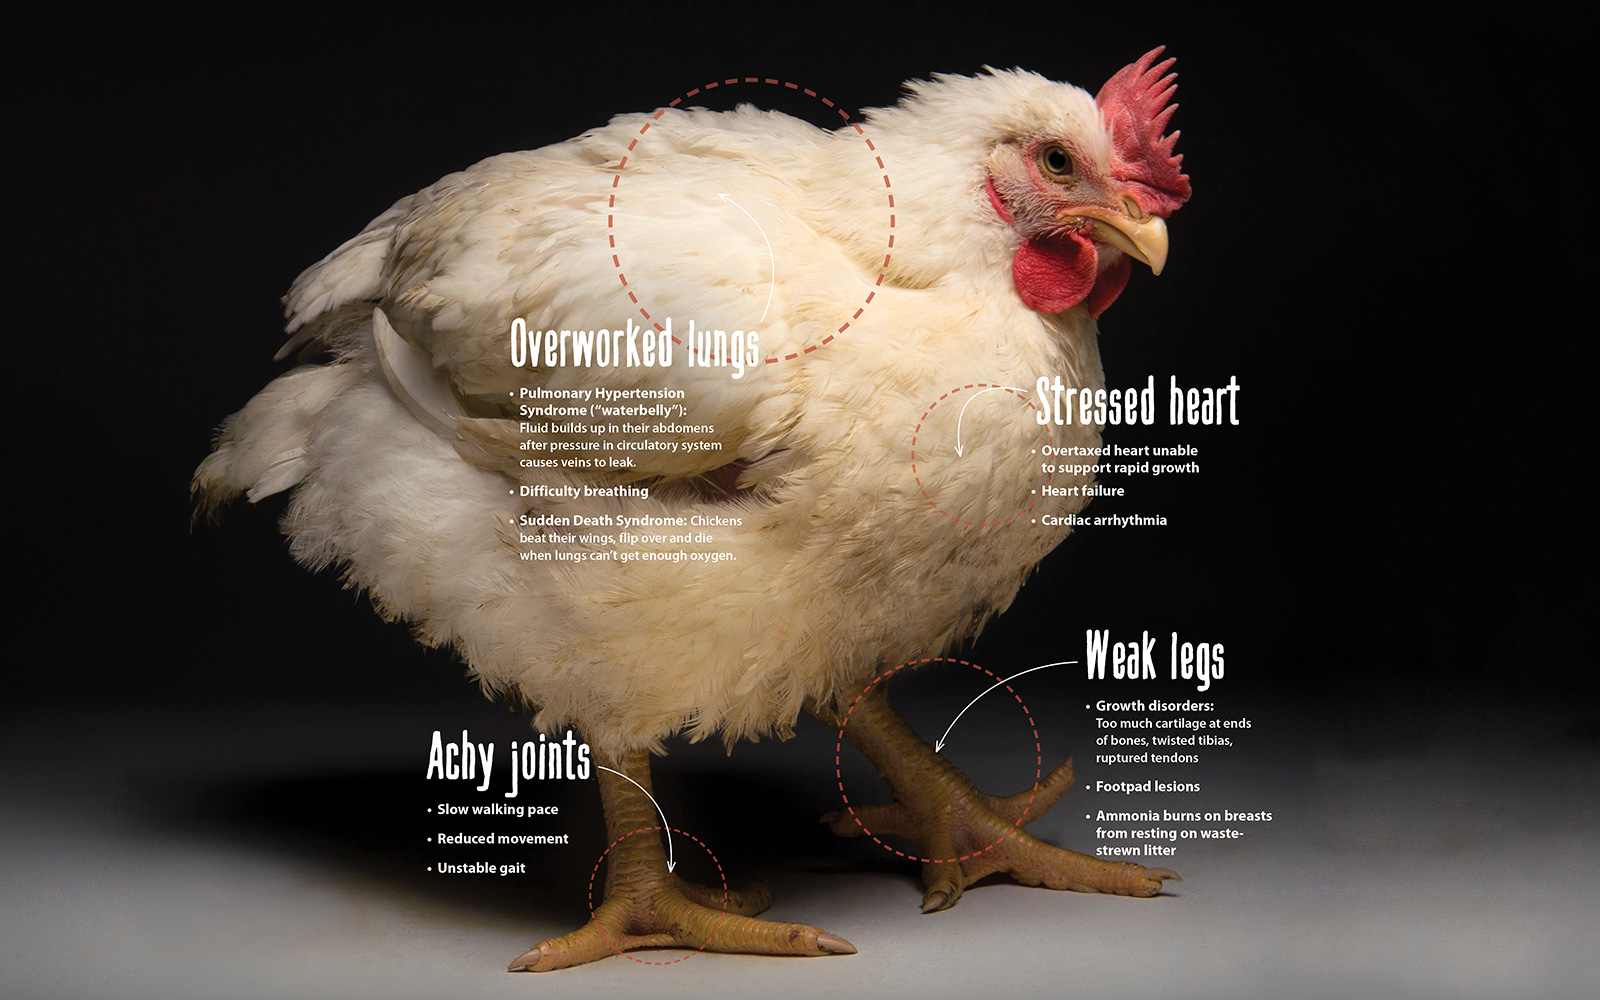 Super Size Problem The Humane Society Of The United States